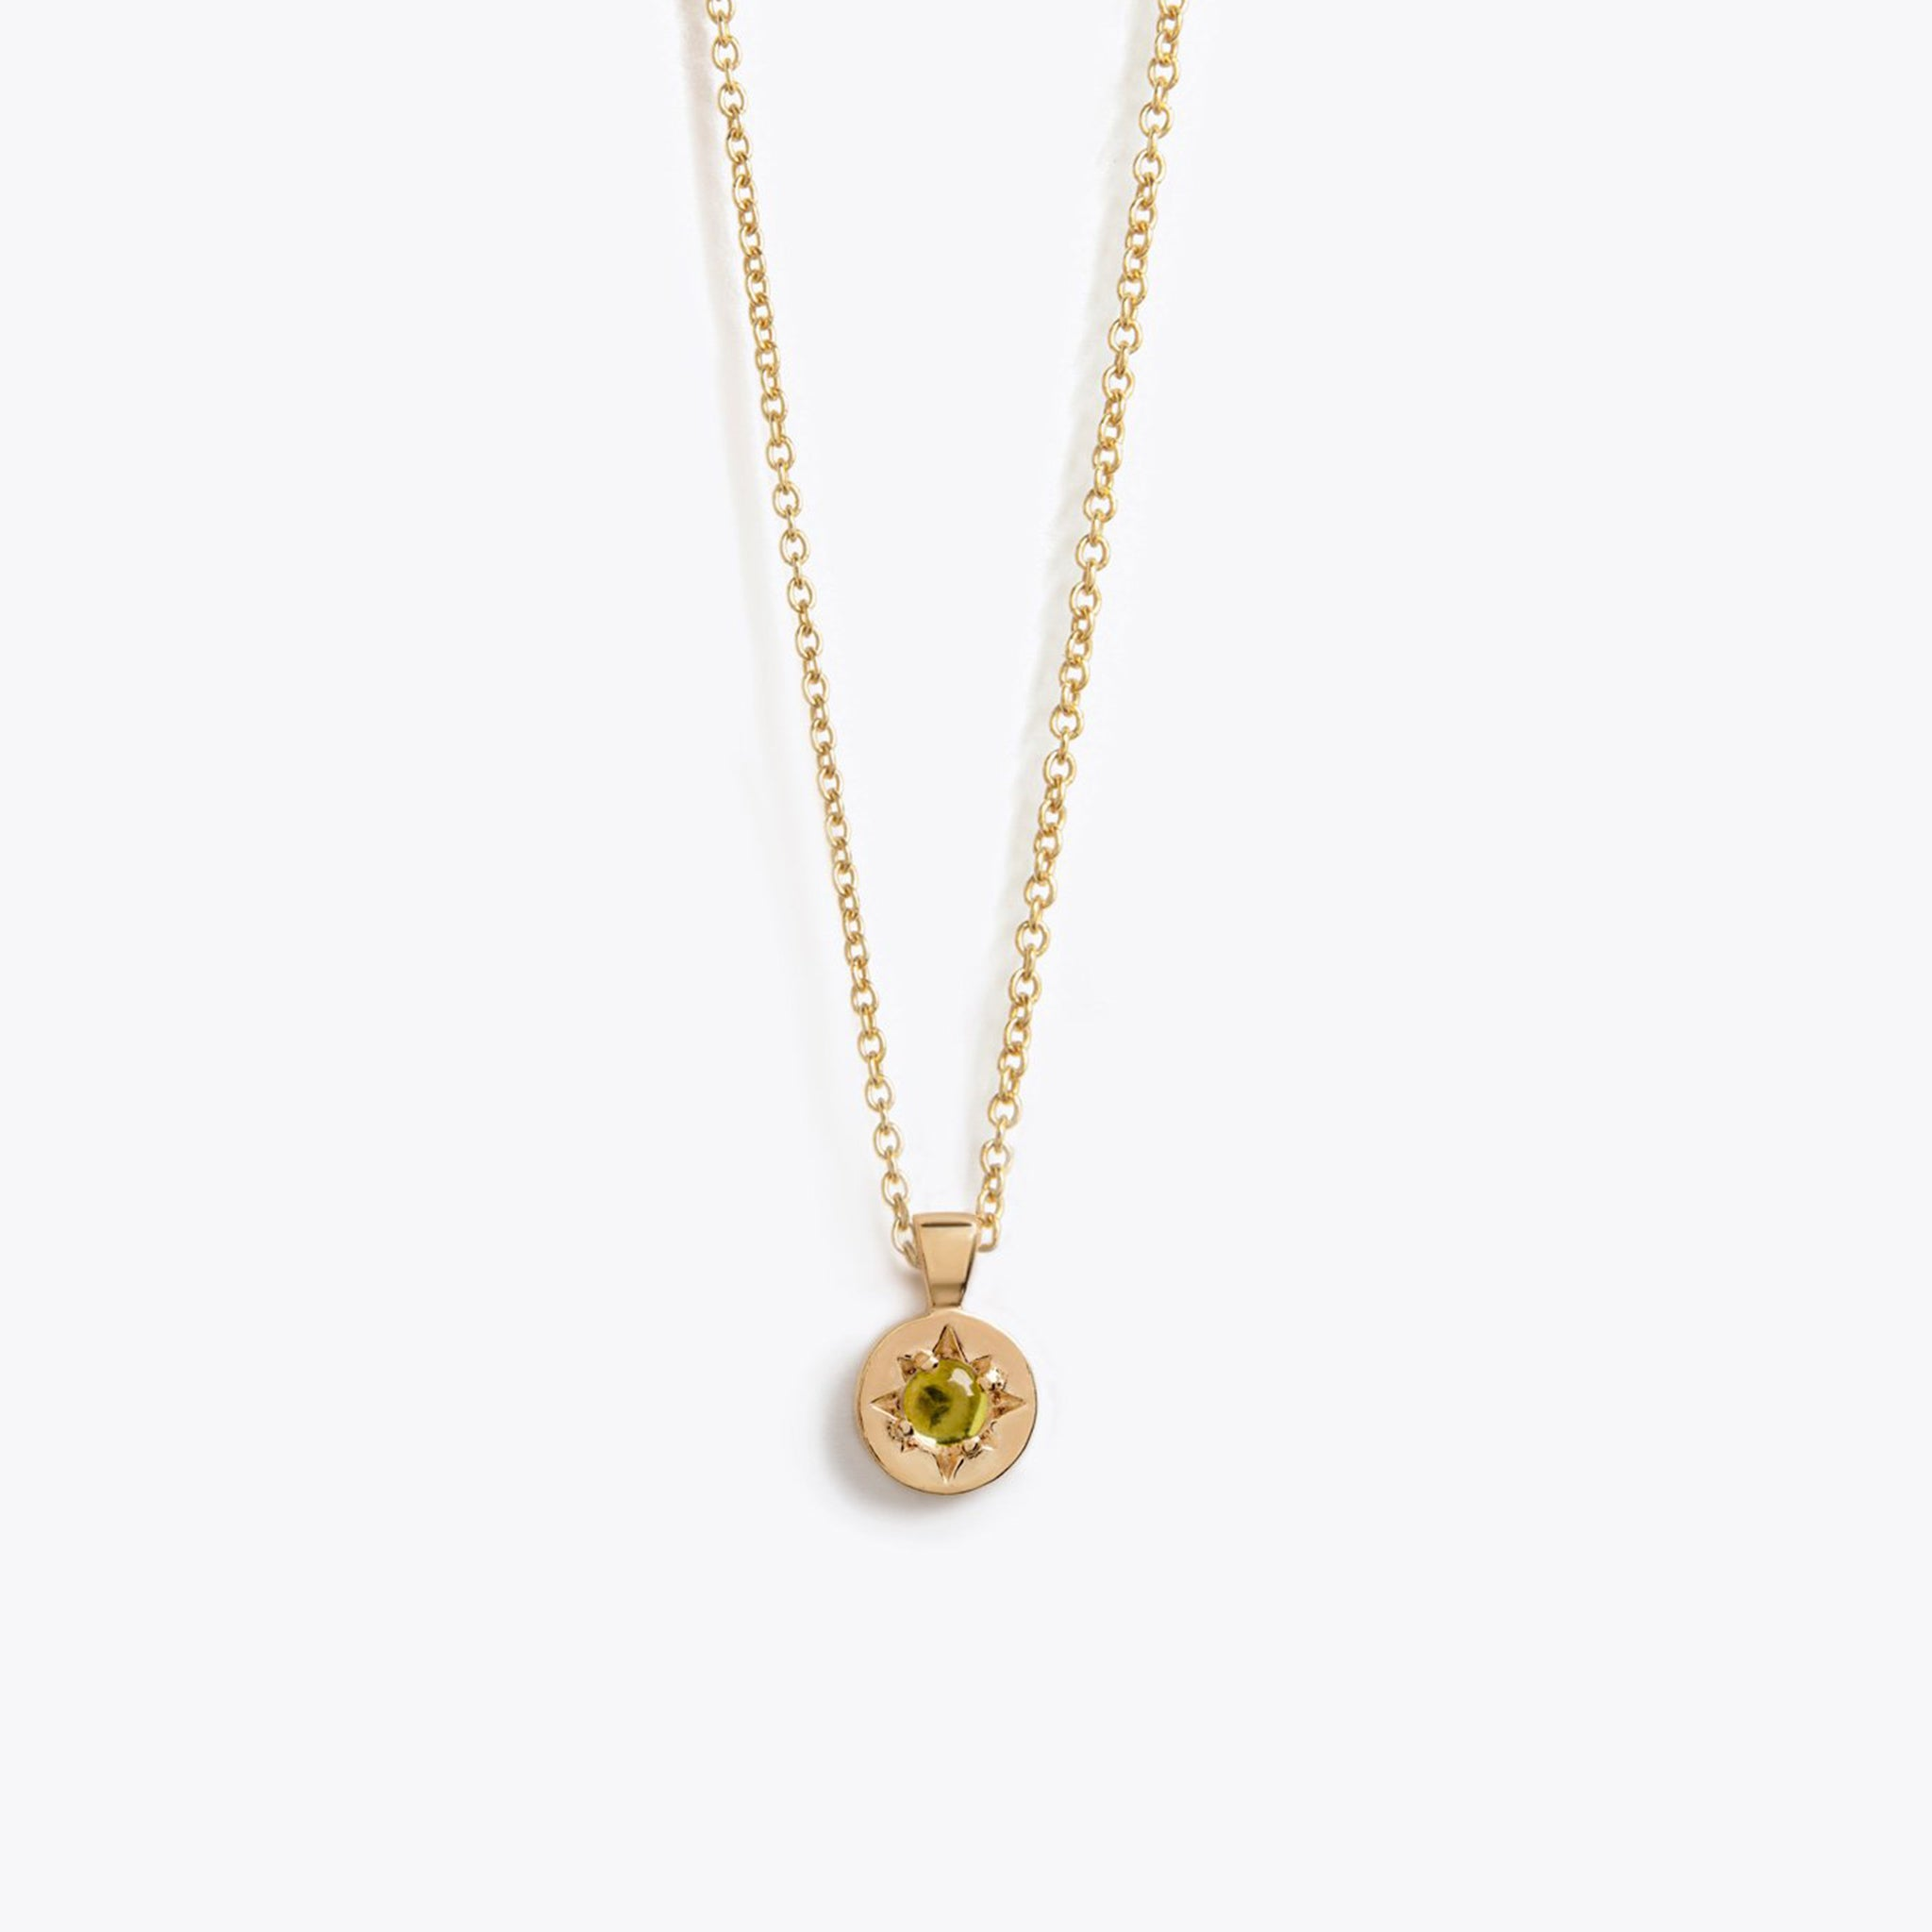 Wanderlust Life August birthstone 14k gold fill charm necklace featuring semi precious green peridot gemstone symbolising the month of August. August birthstone gold necklace available in 17